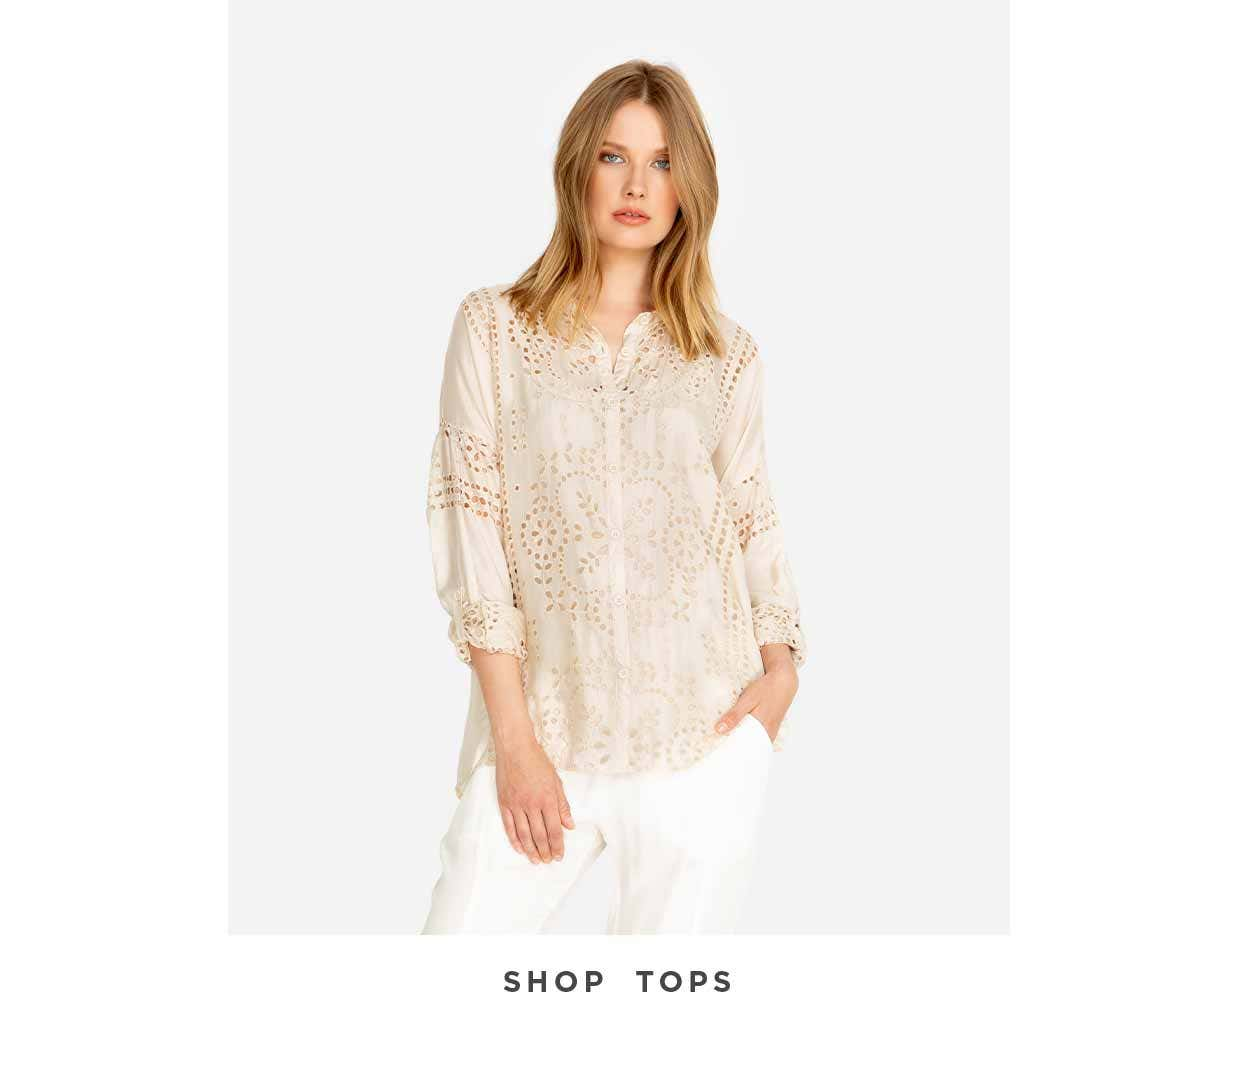 4f7bb801f4 Johnny Was | Boho Chic Clothing & Vintage-Inspired Style